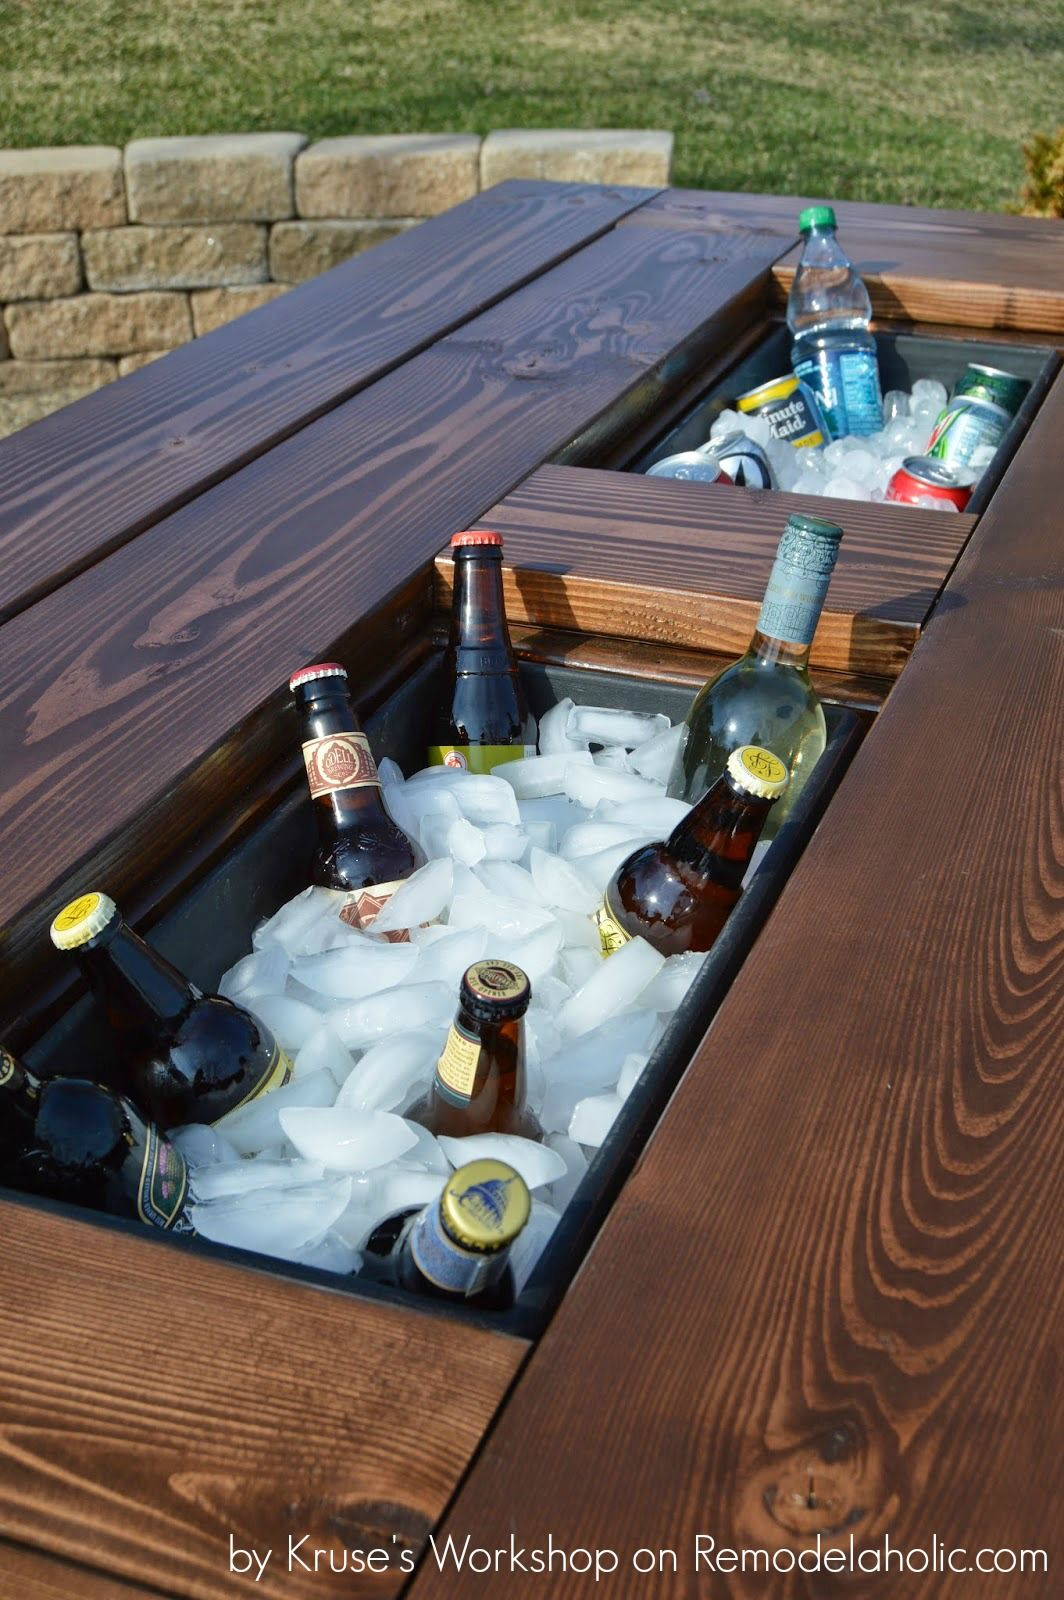 Build A Patio Table With Built In Drink Coolers From Planter Bo Kruse S Work On Remodelaholic